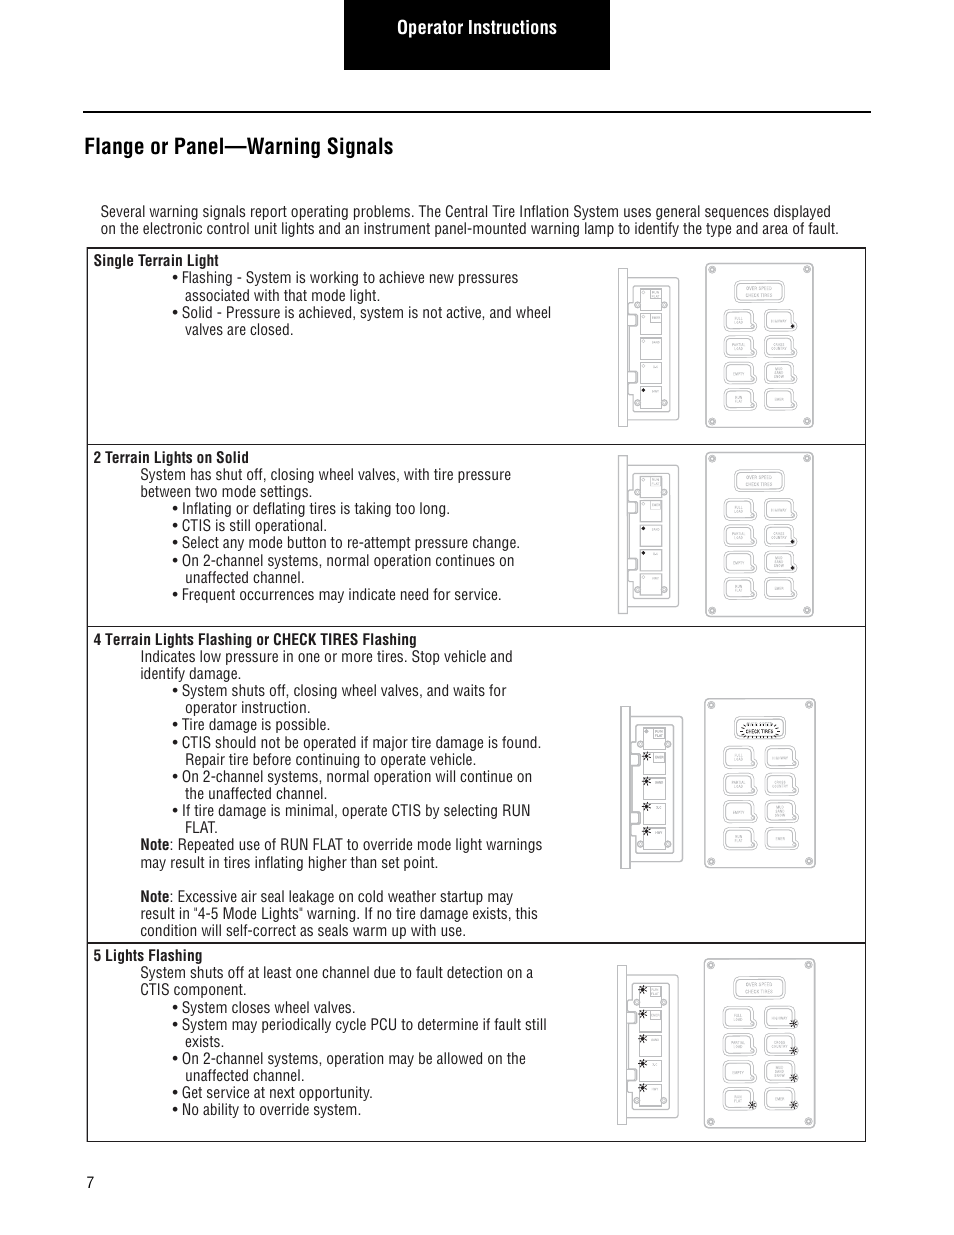 Flange or panel—warning signals | Spicer CTIS (Central Tire Inflation  System) Troubleshooting Guide User Manual | Page 10 / 72